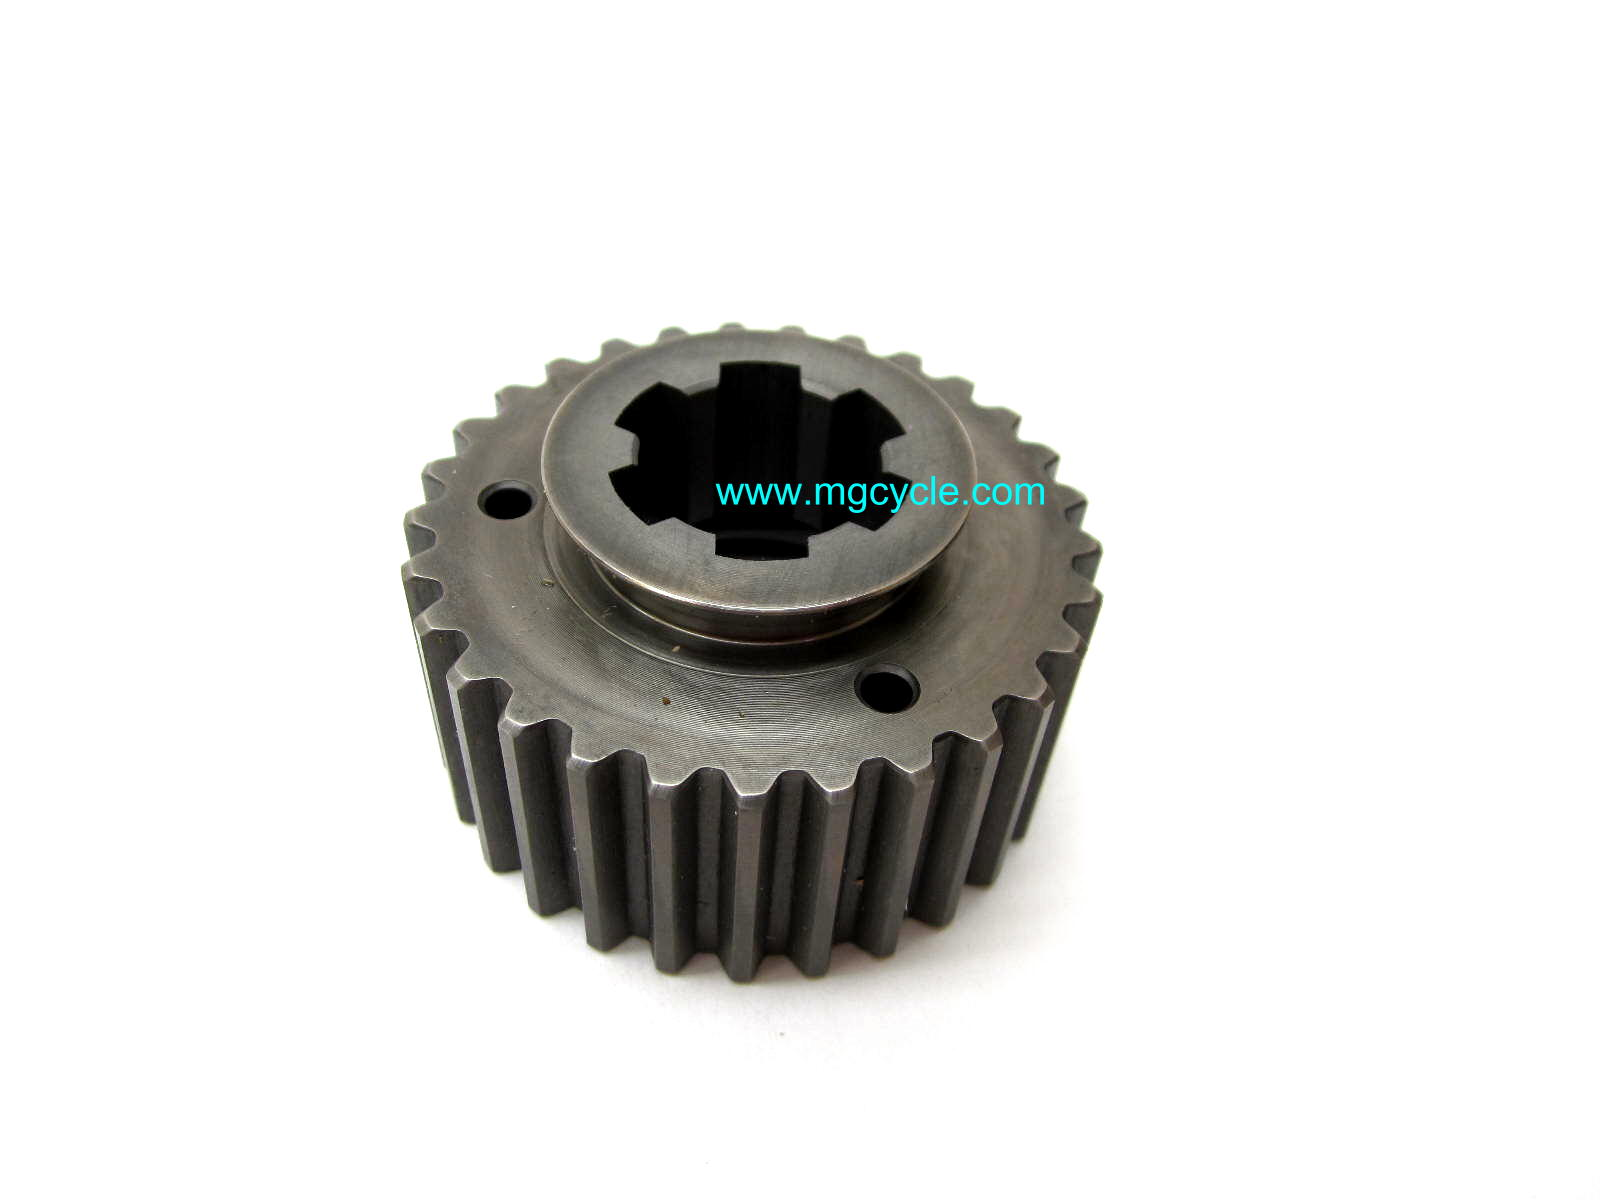 clutch input spline, hub, V700, Amb 4 speeds